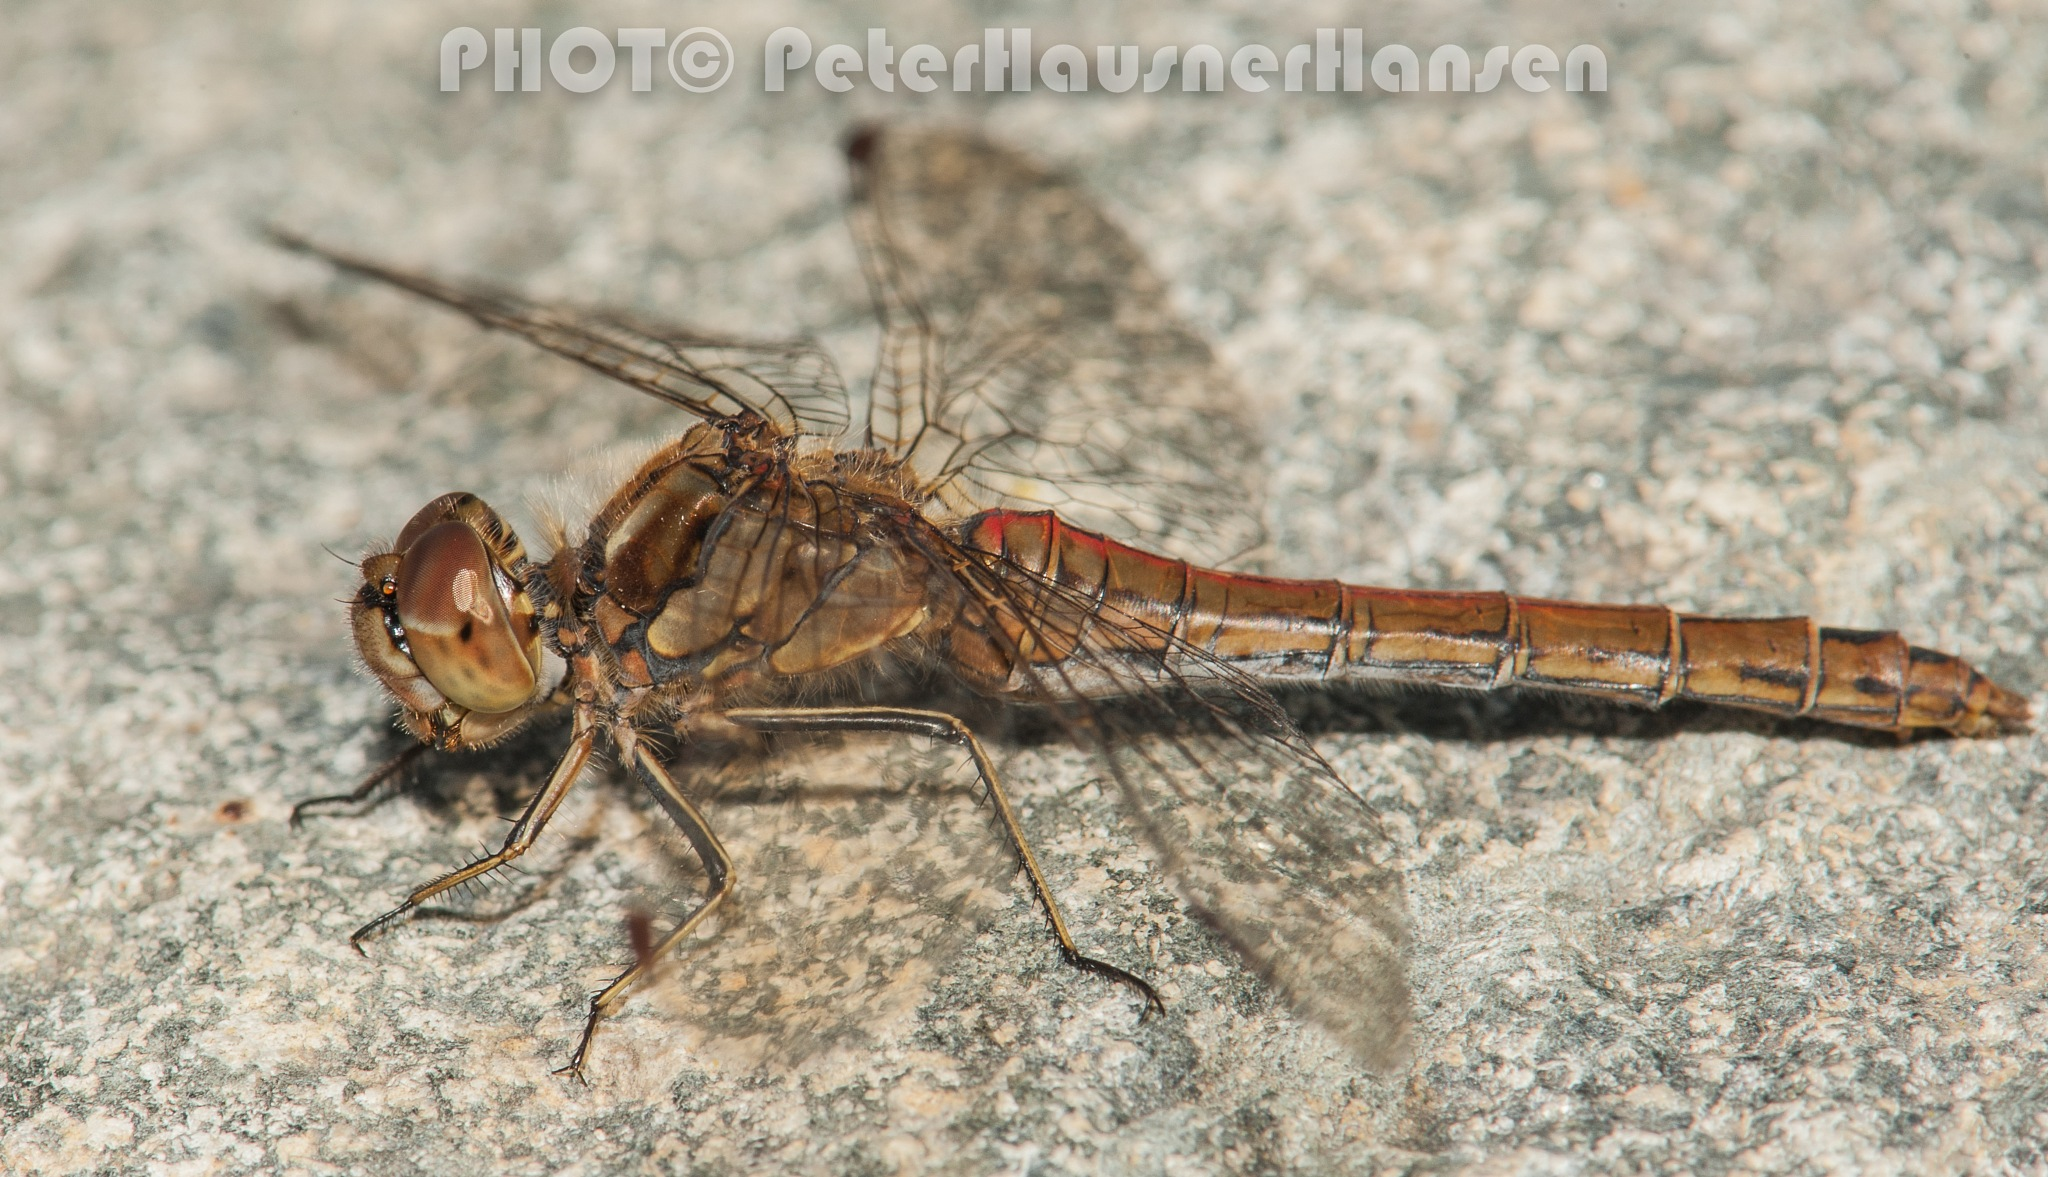 Dragonfly  by PHOTOPHH.1